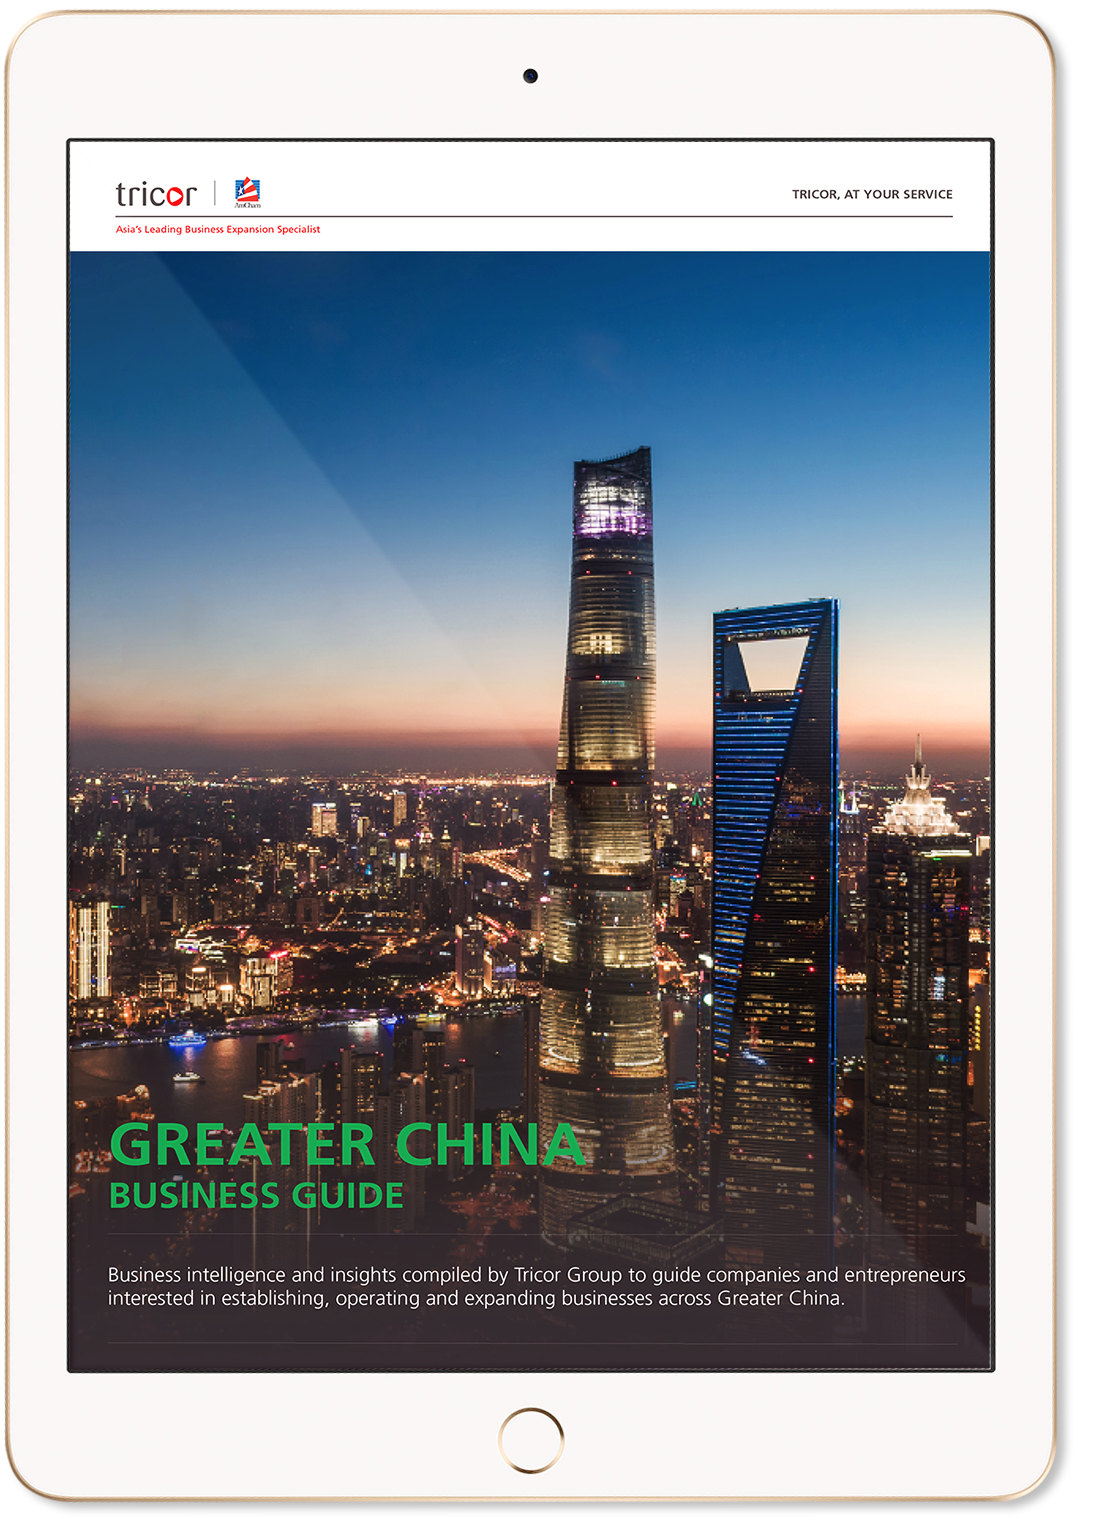 Doing business in Greater China